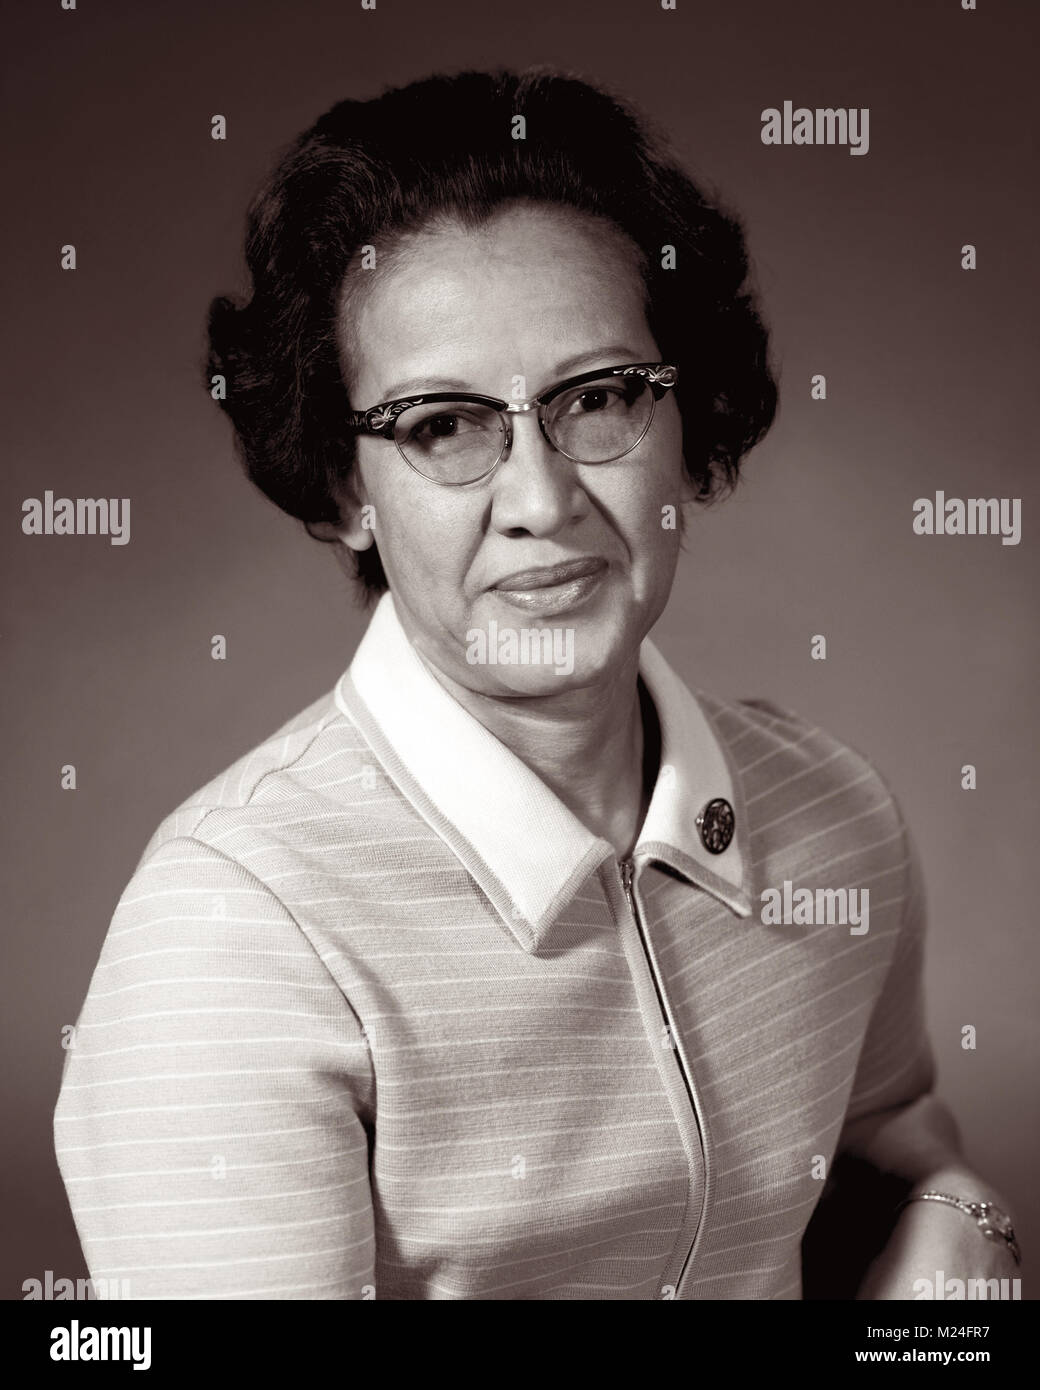 Katherine Johnson, one of NASA's 'human computers' featured in the movie Hidden Figures, is a mathematician - Stock Image